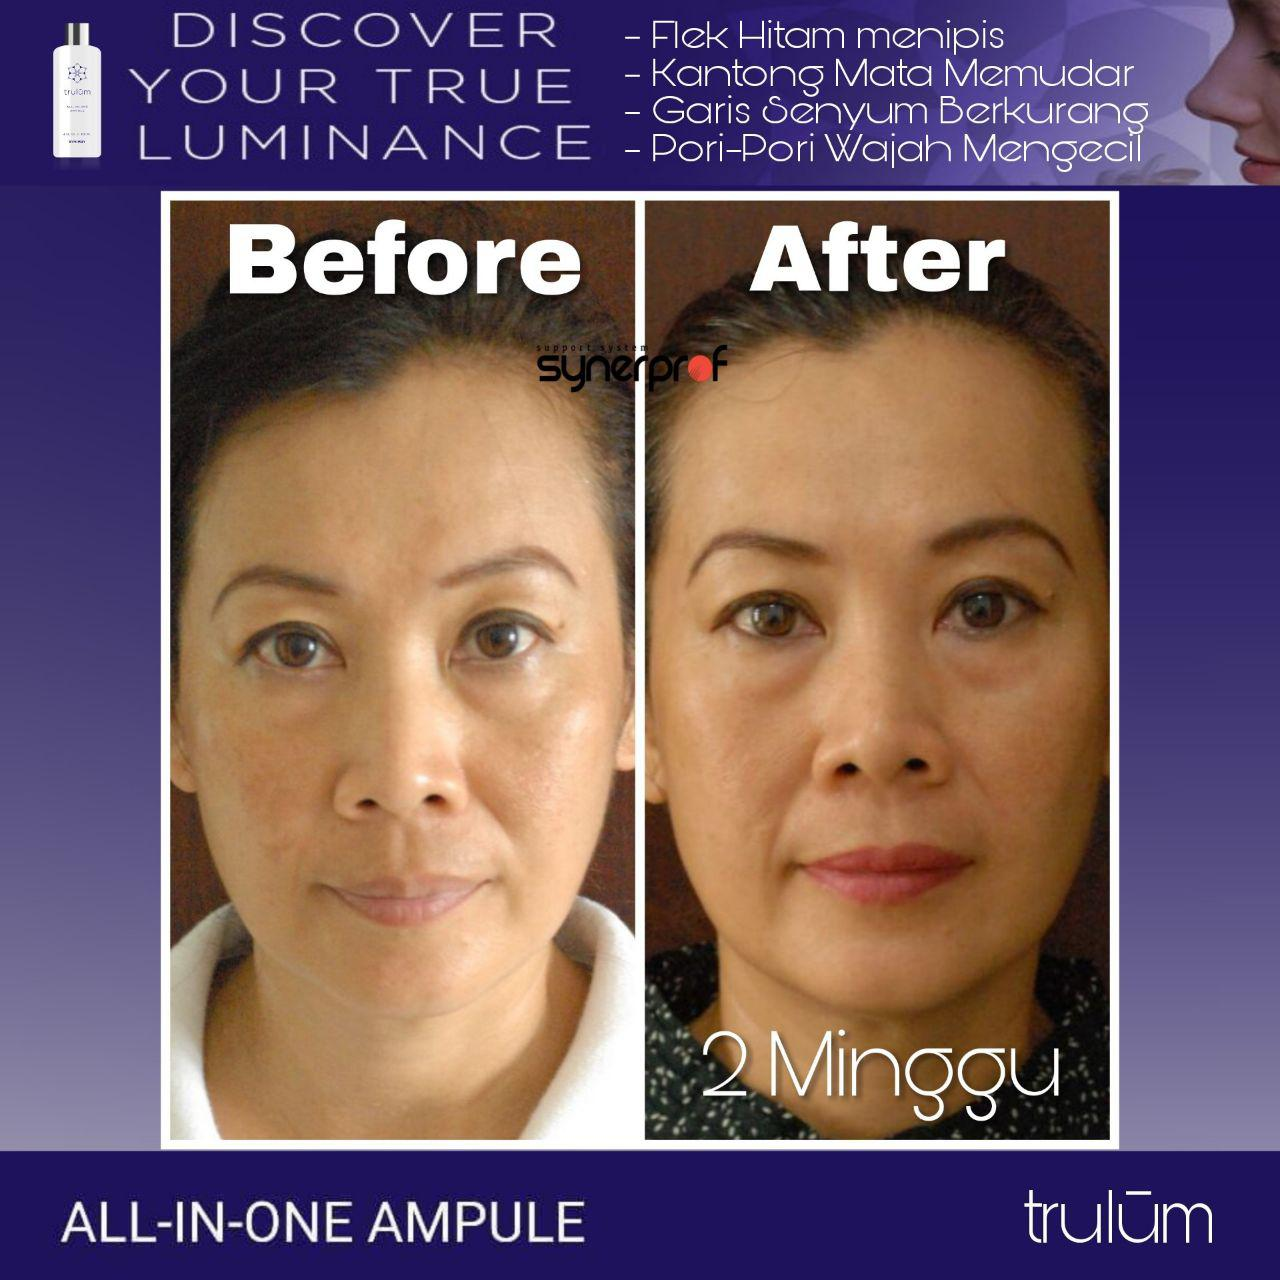 Jual Trulum All In One Ampoule Di Tanah Laut WA: 08112338376